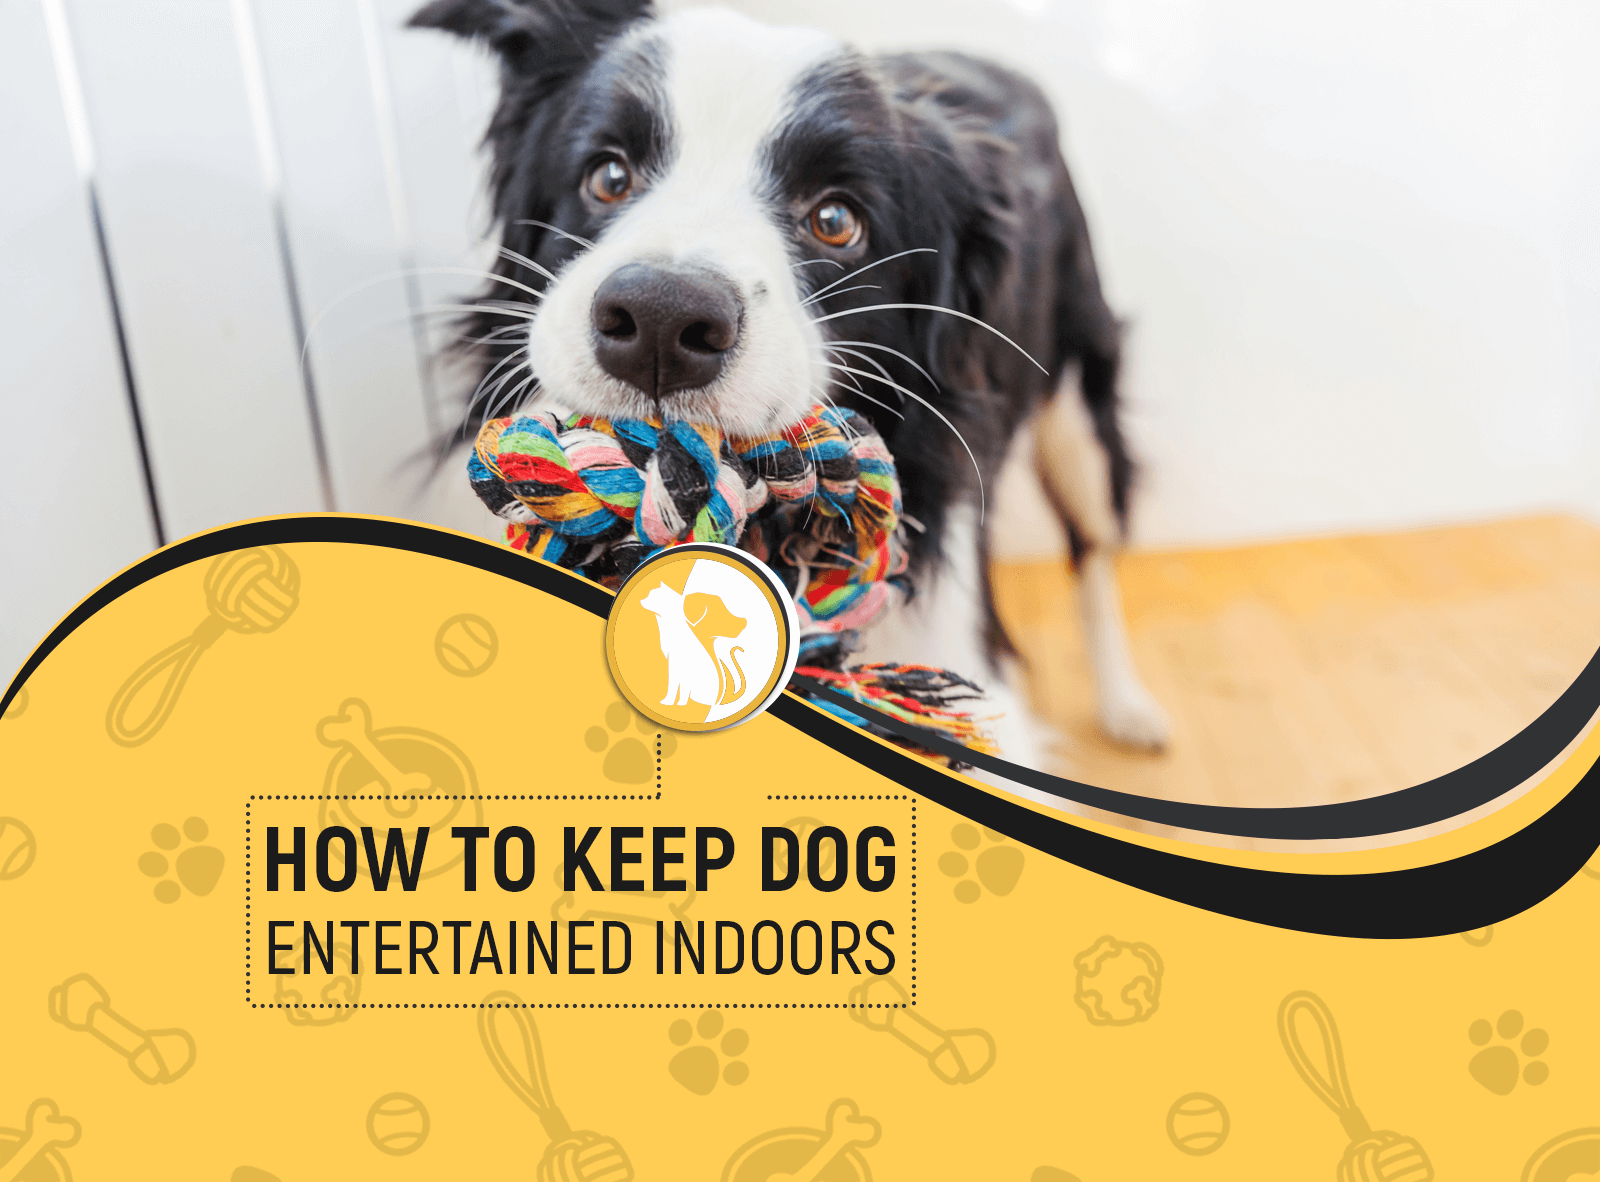 How to Keep a Dog Entertained Indoors